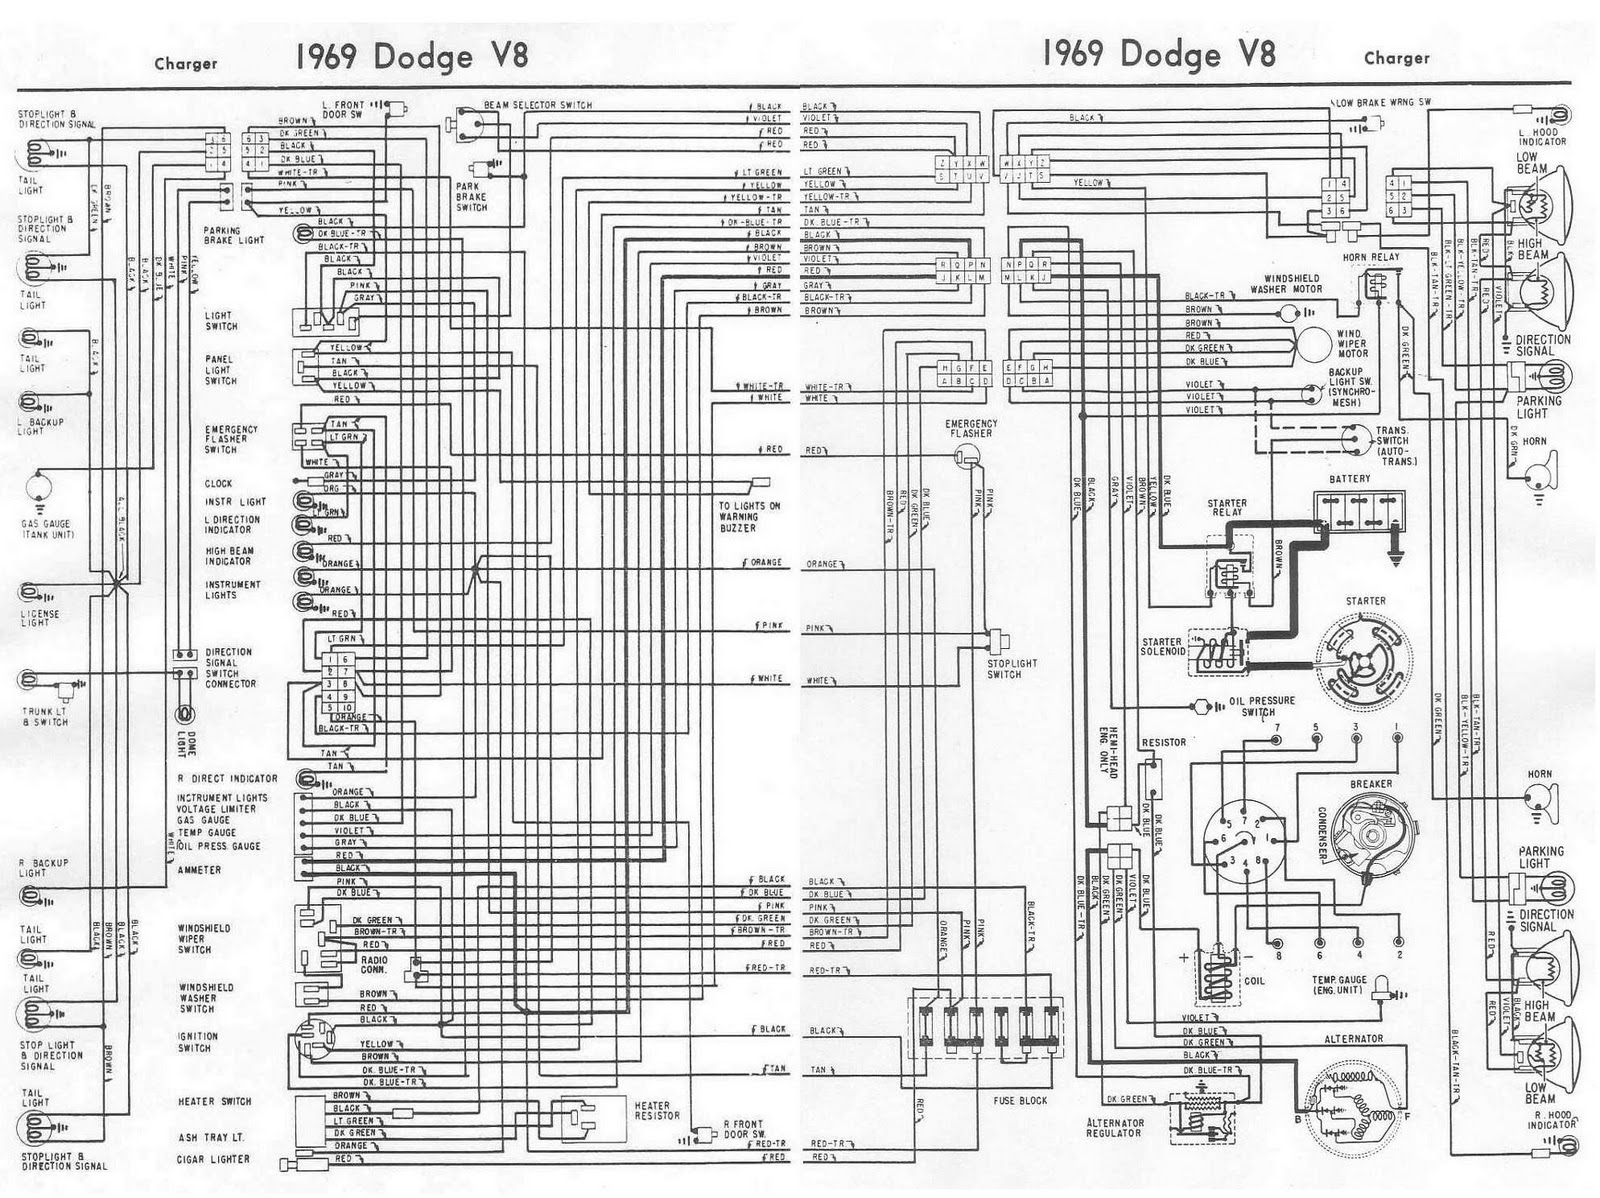 Wire Harness For 1953 Dodge Truck Kenwood Dnx570hd Wiring Schematic 1950 Diagram 1969 Charger V8 Complete